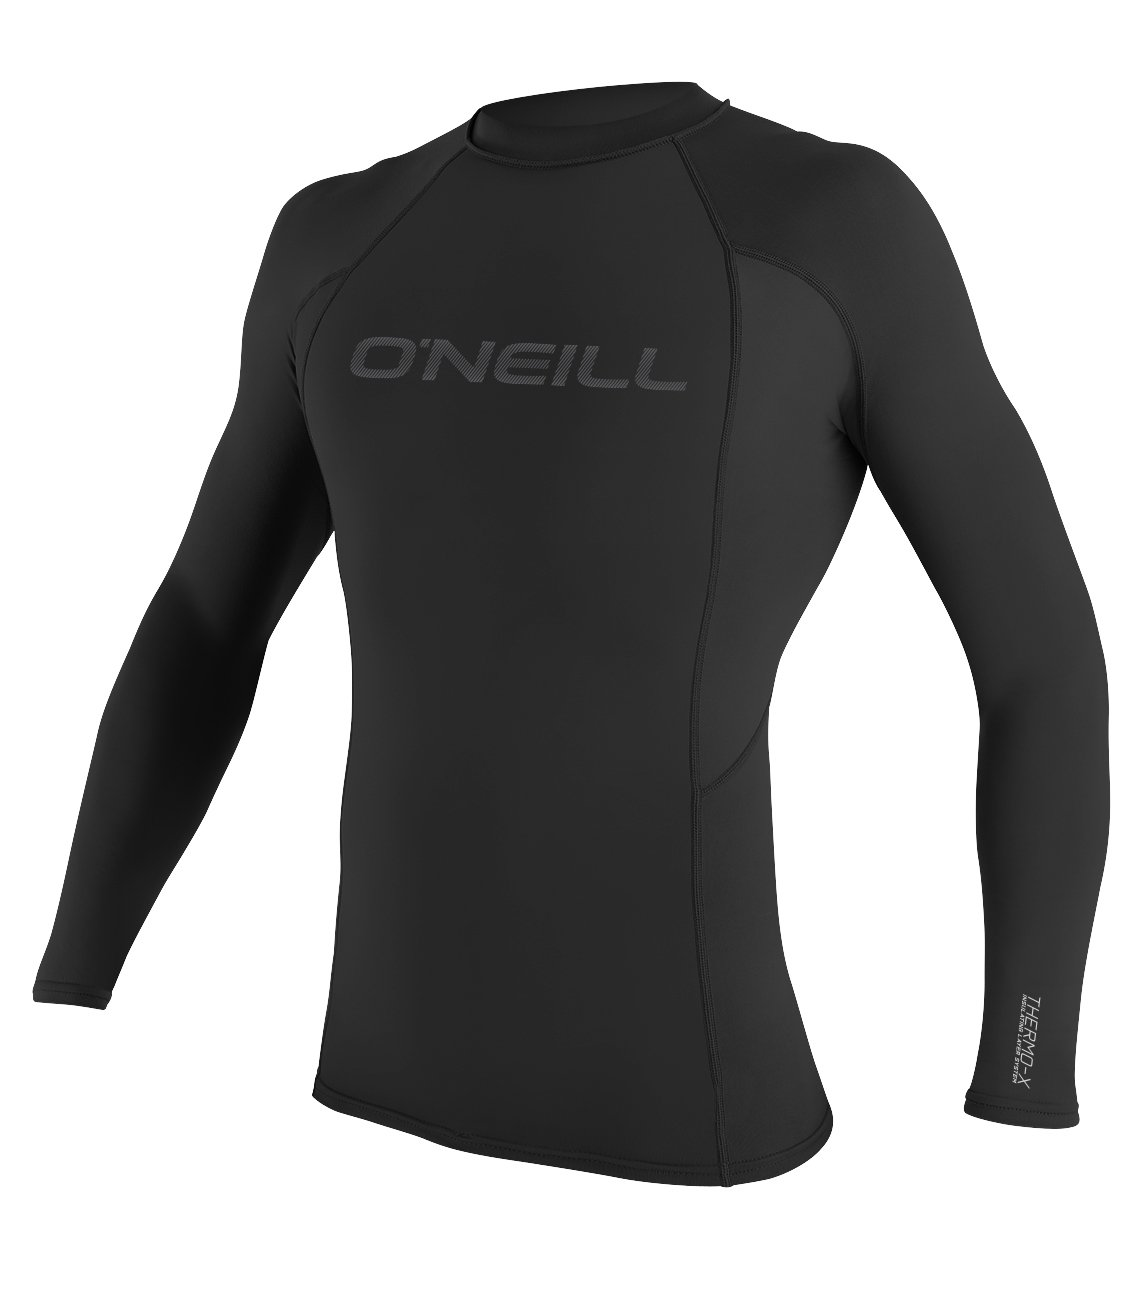 O'Neill Men's Thermo X Long Sleeve Insulative Top, Black, Small by O'Neill Wetsuits